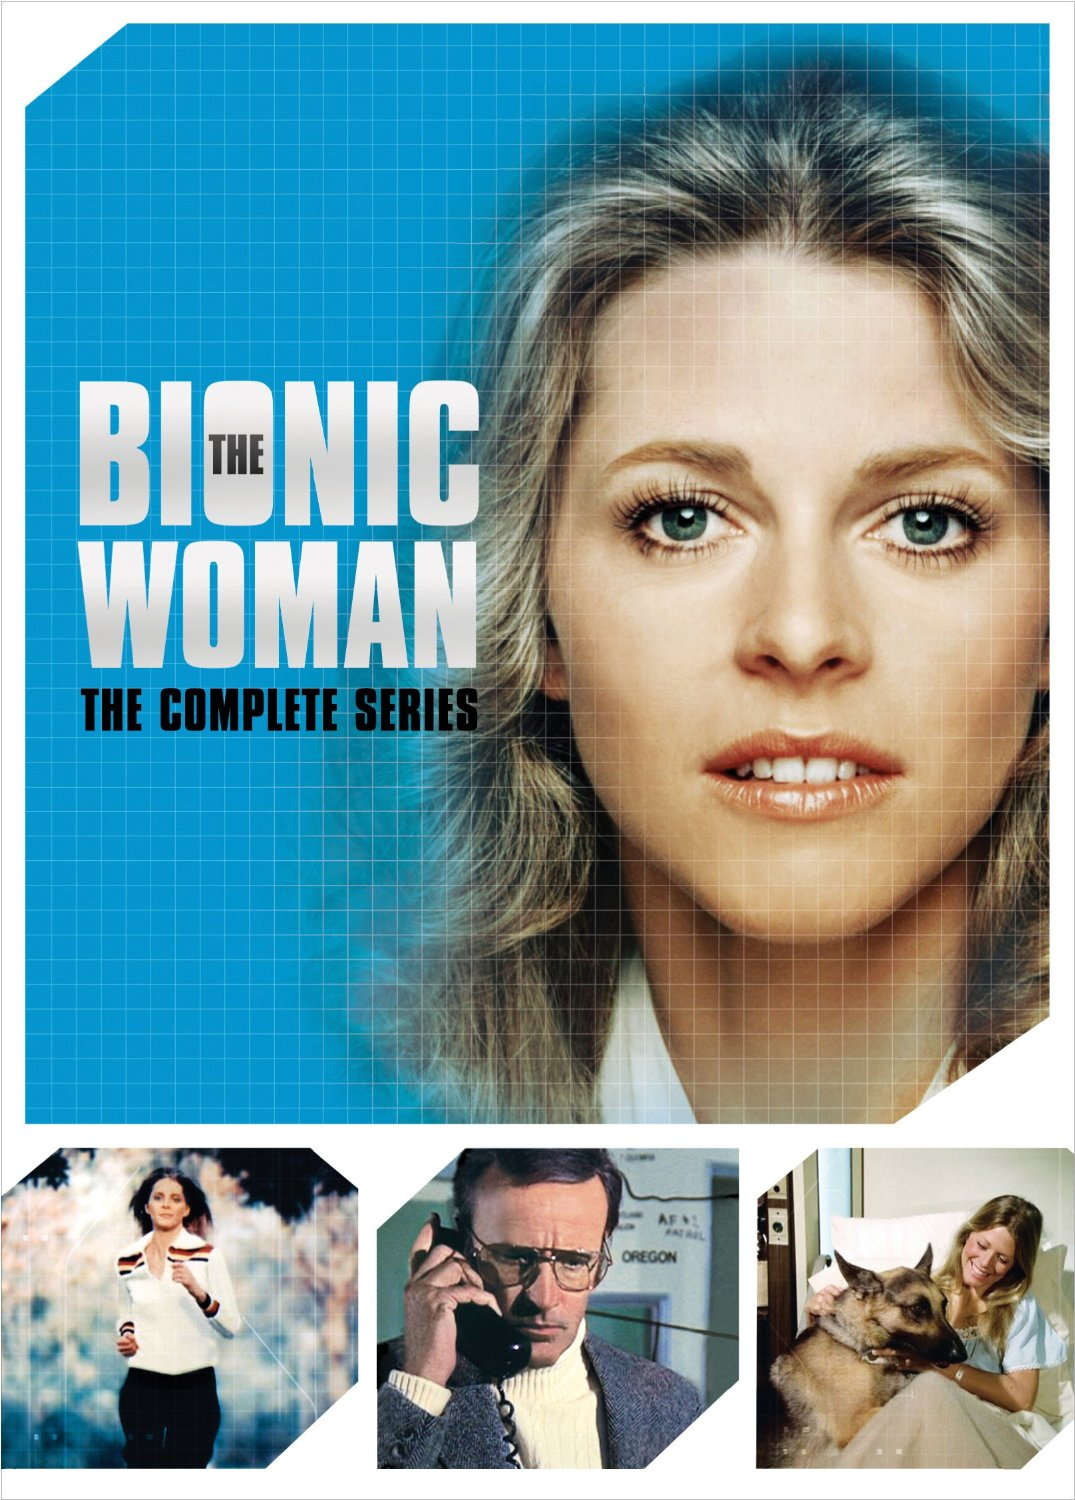 The Bionic Woman (1976 series)